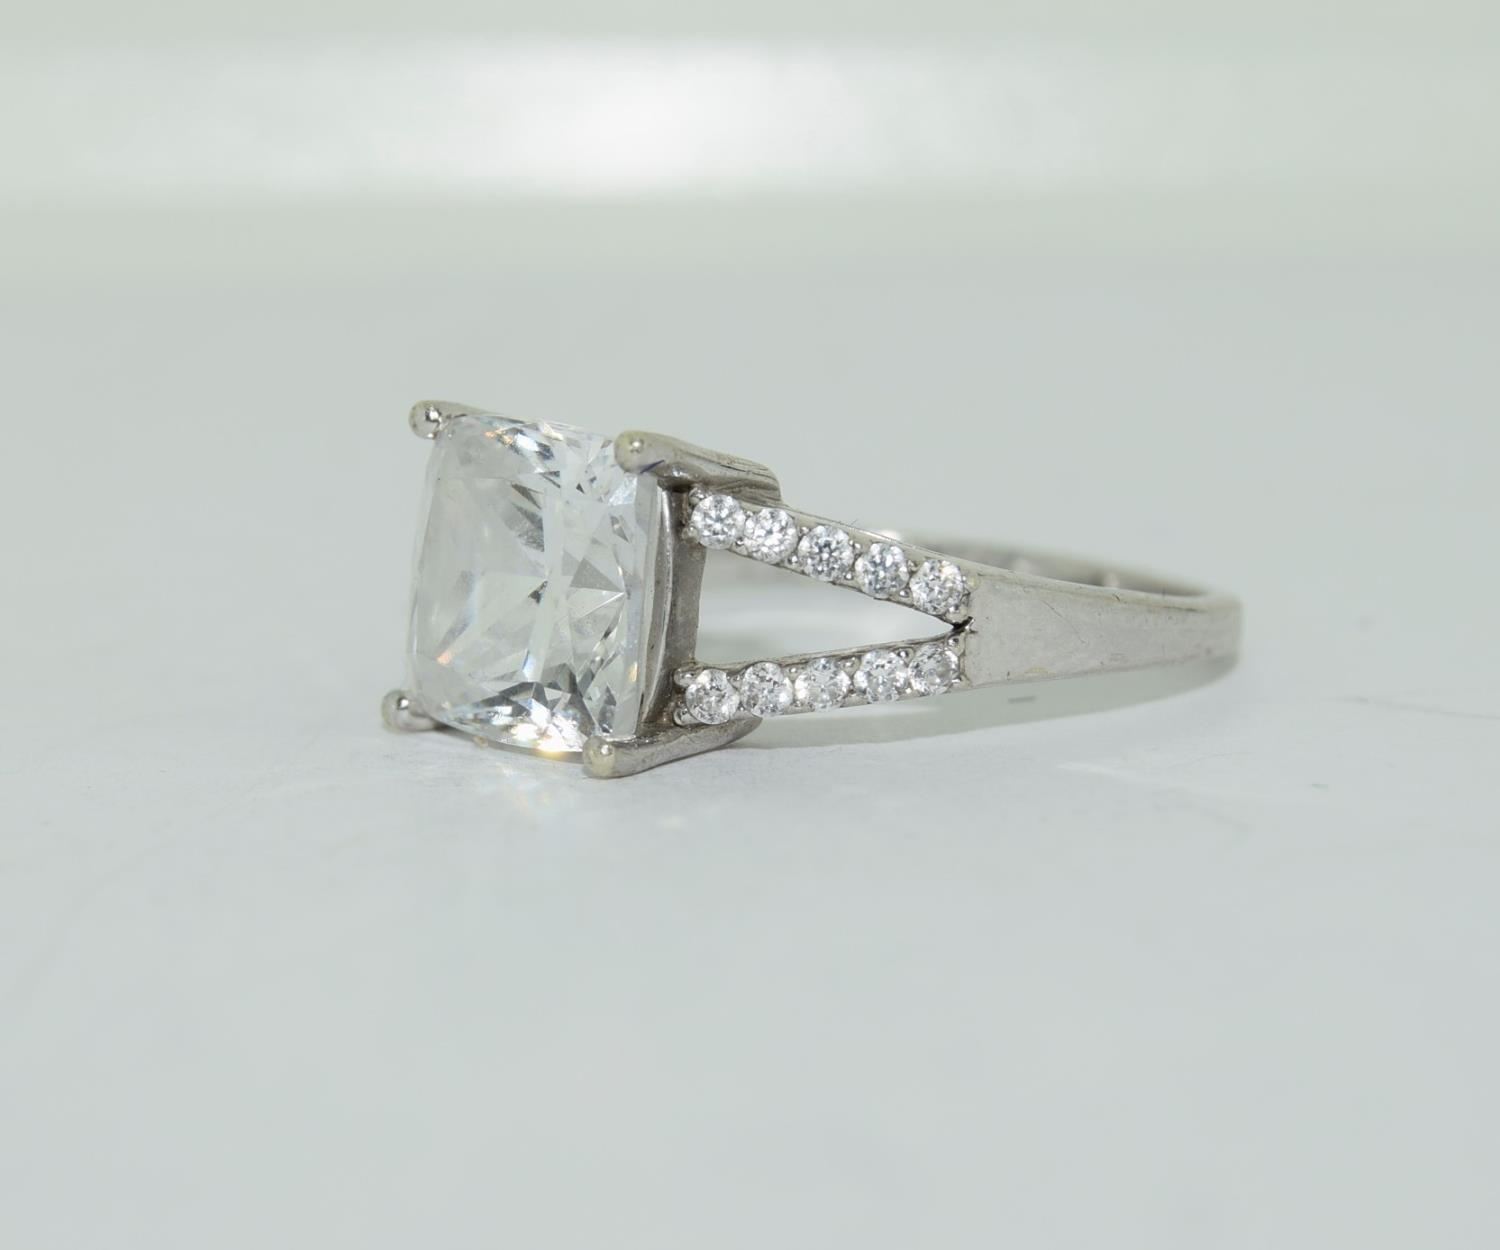 9ct white gold ladies square set solitare ring size R - Image 7 of 12